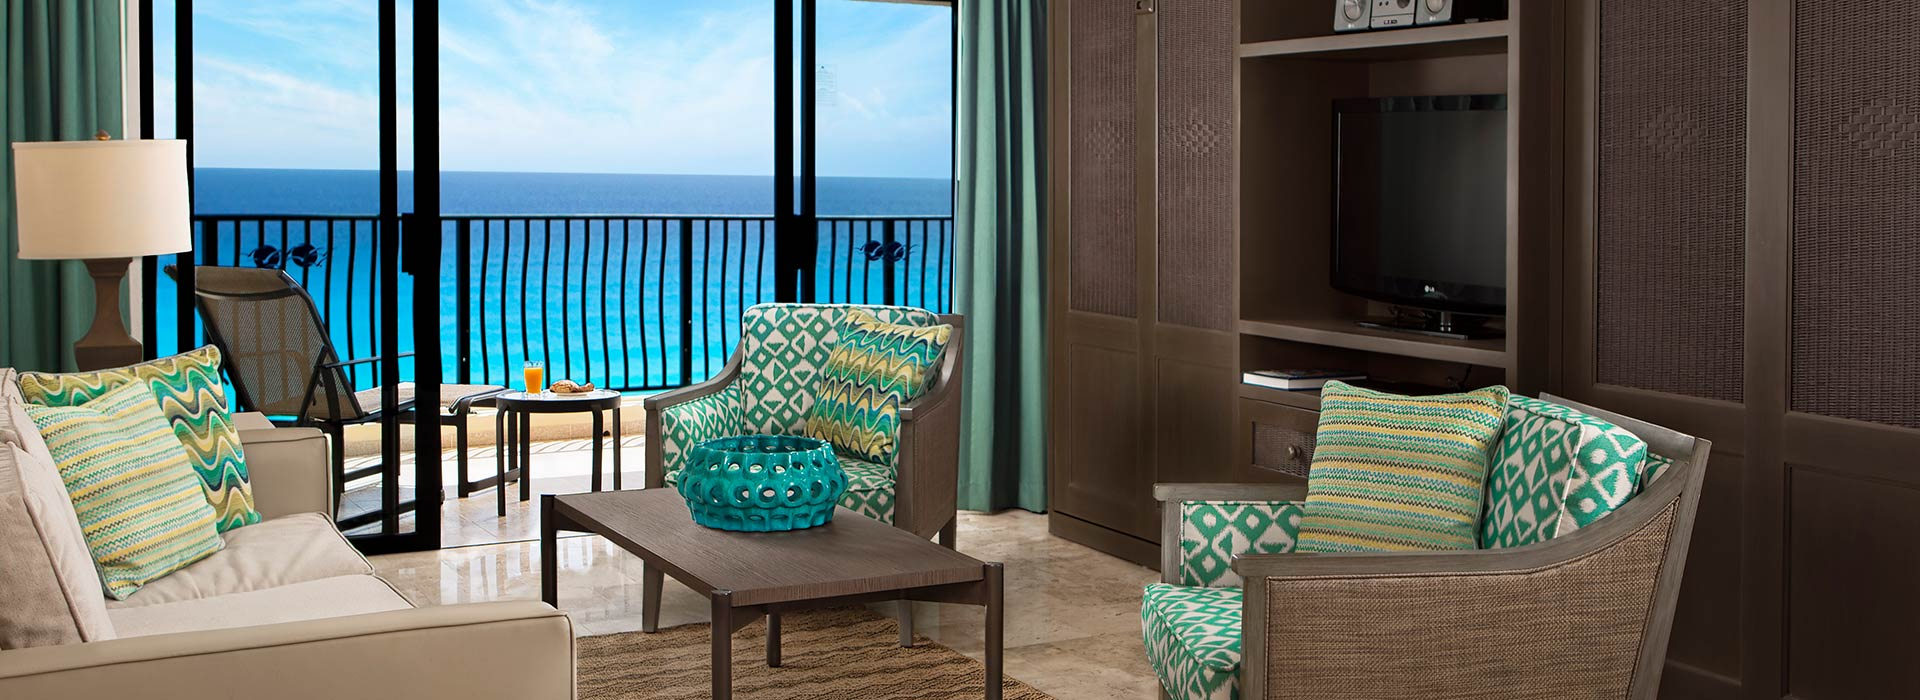 Cancun Beachfront Resorts Villas The Royal Sands Rooms